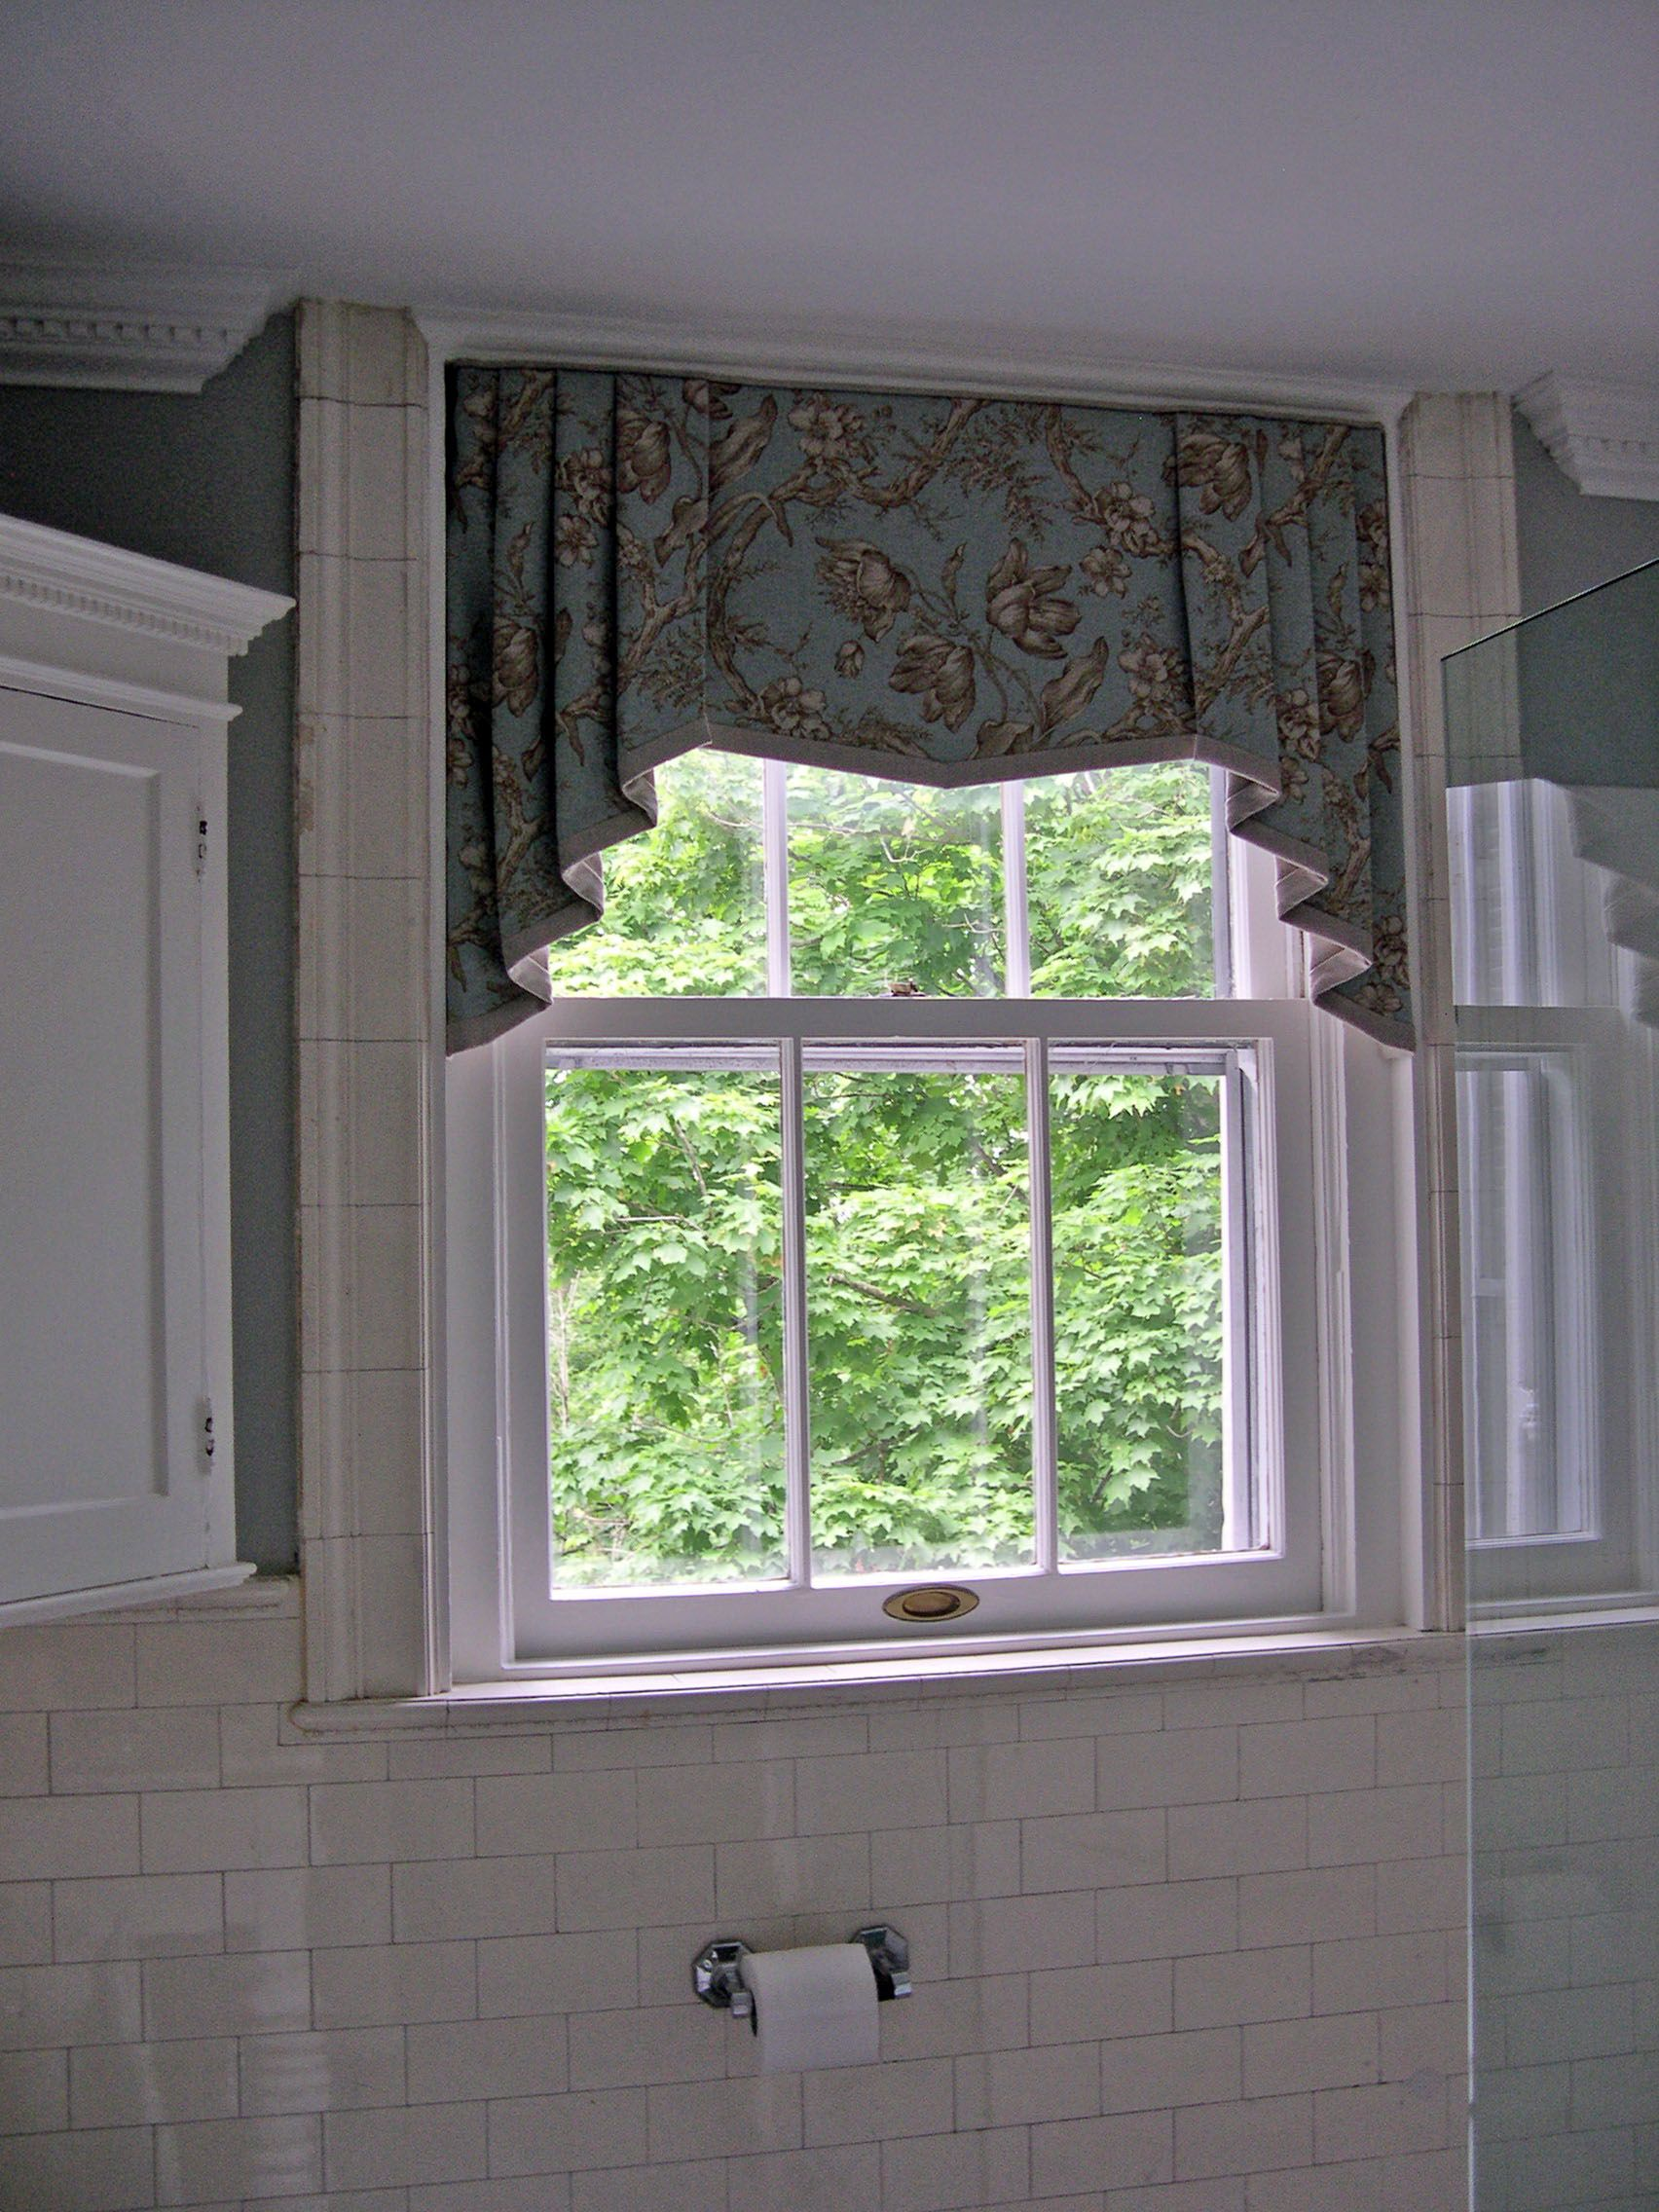 curtains colorful window valance admirable room bri dining drapes compelling l clearwater kitchen of yellow aqua custom ascot full floral gratify and valances layered alarming lined cool or scarf amazing teal size va multi stylish